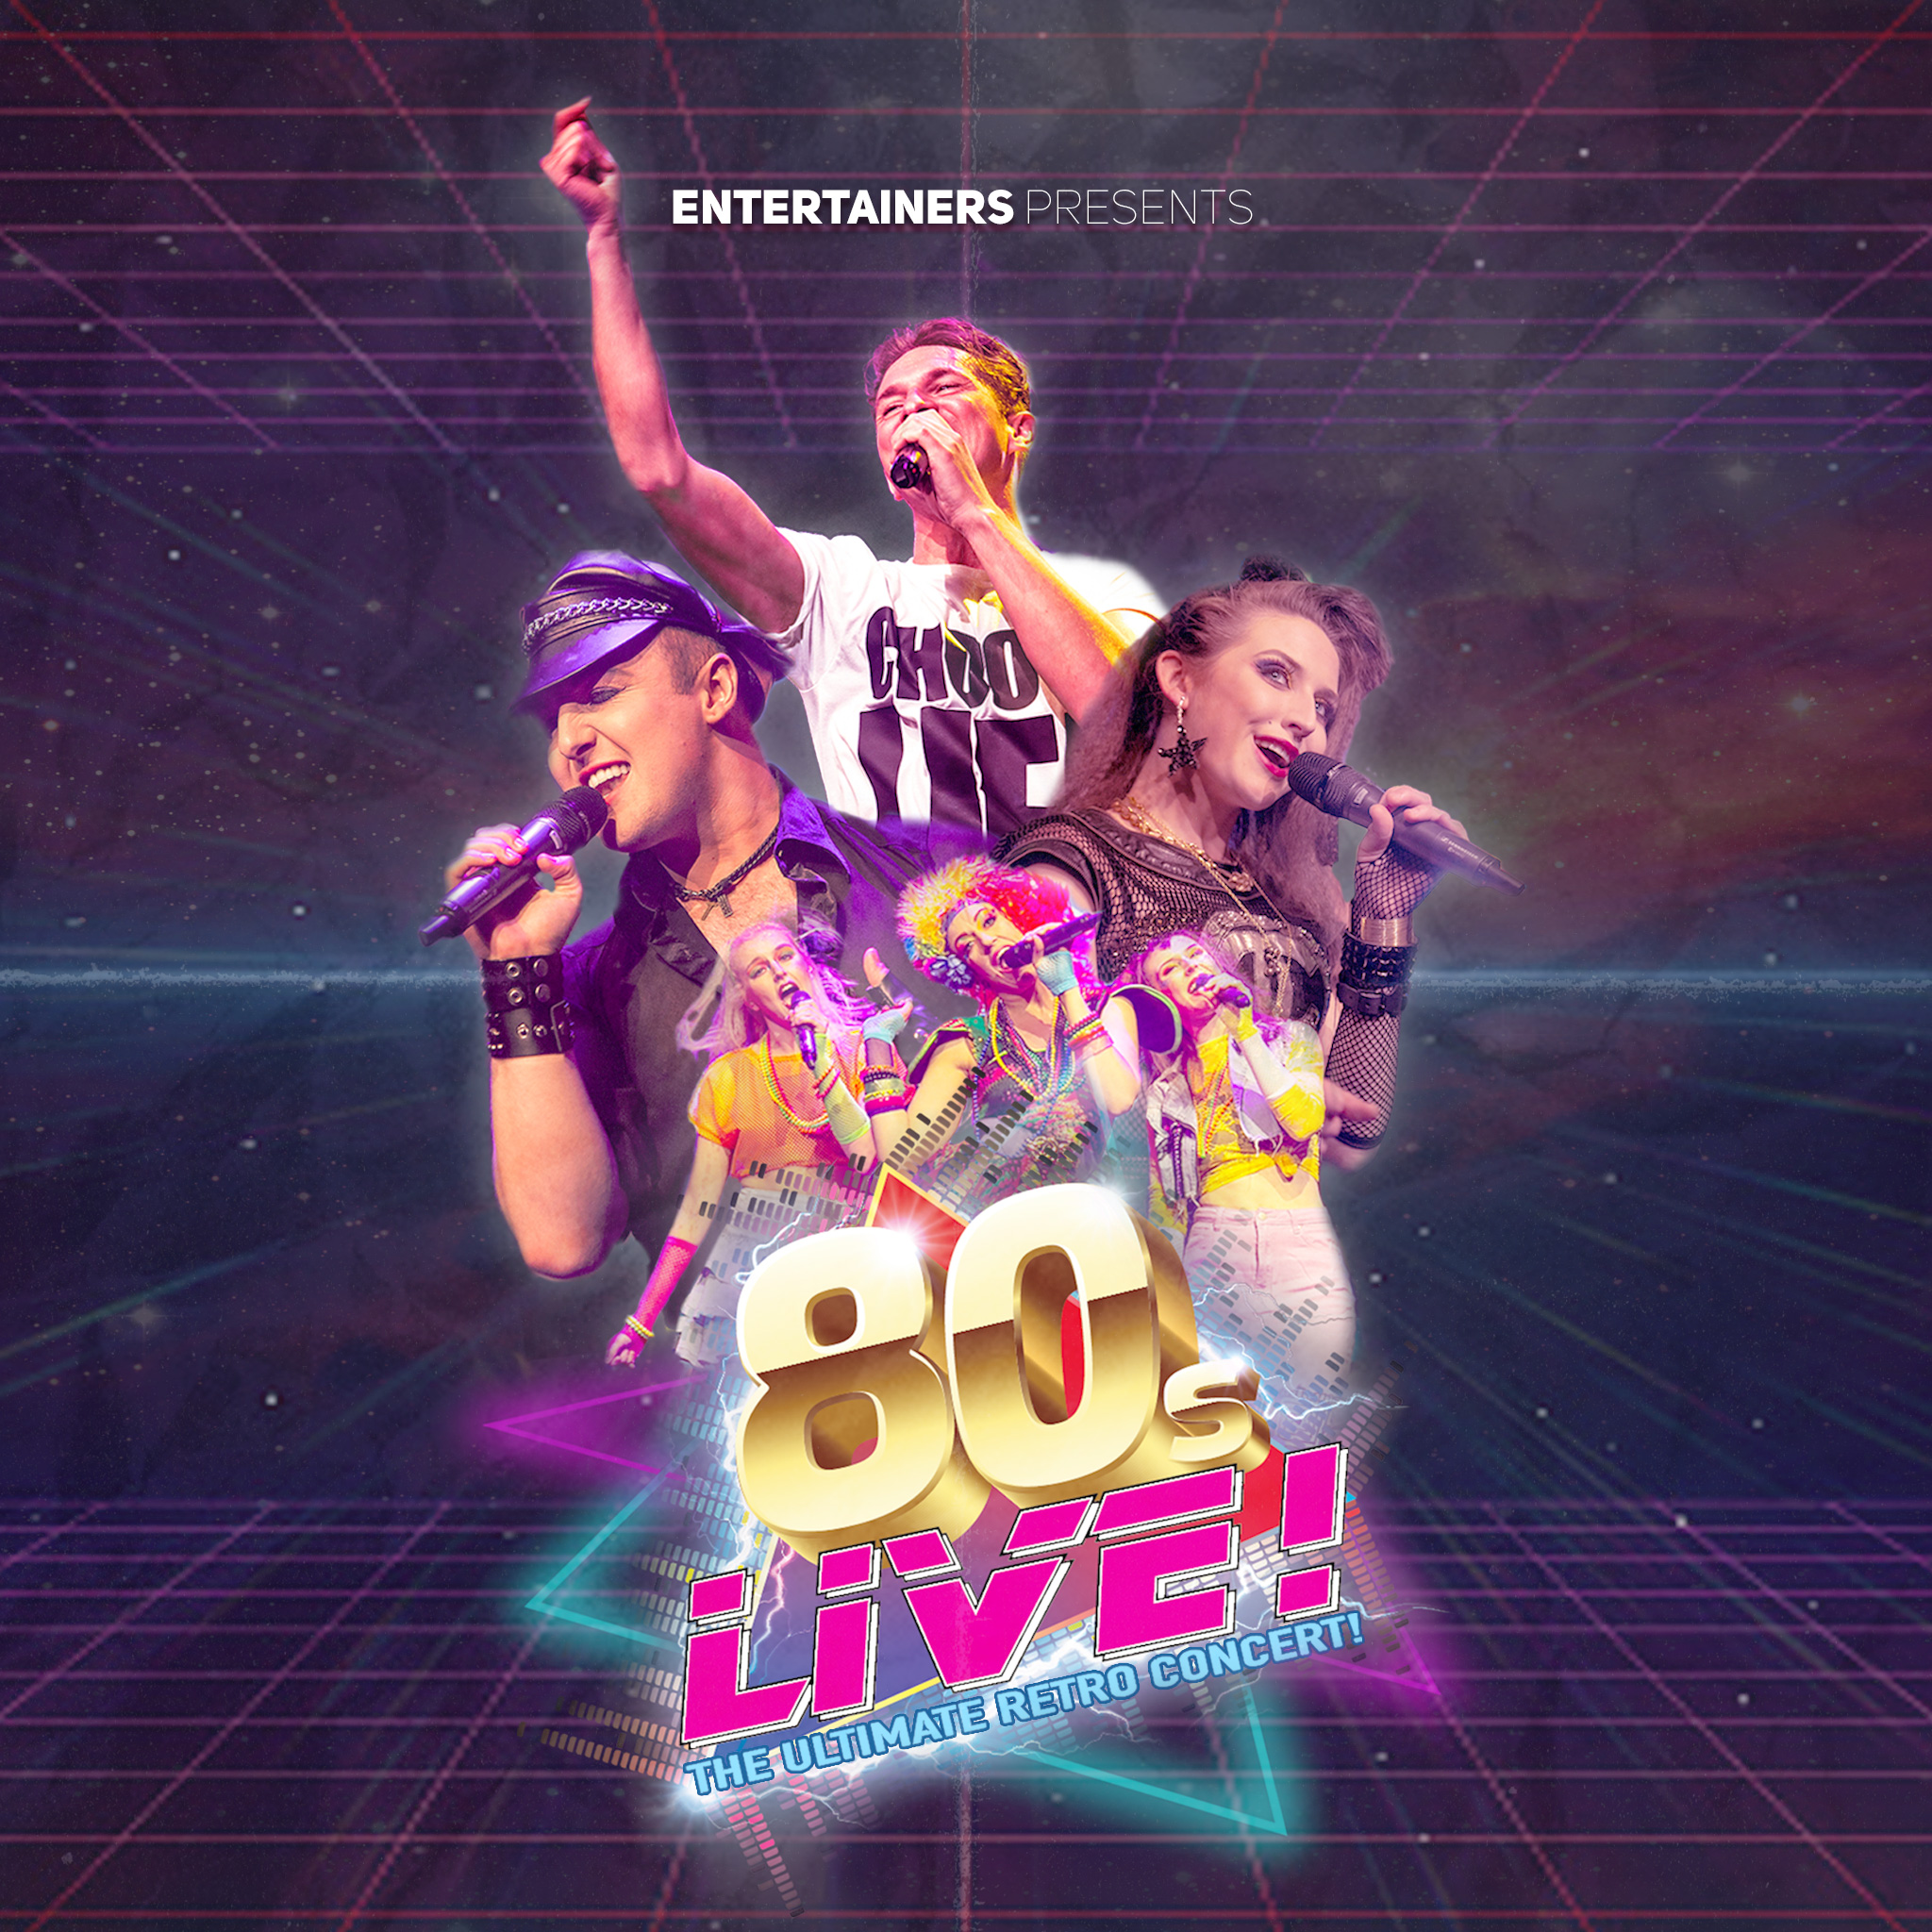 Event image for 80s Live at Camberley Theatre